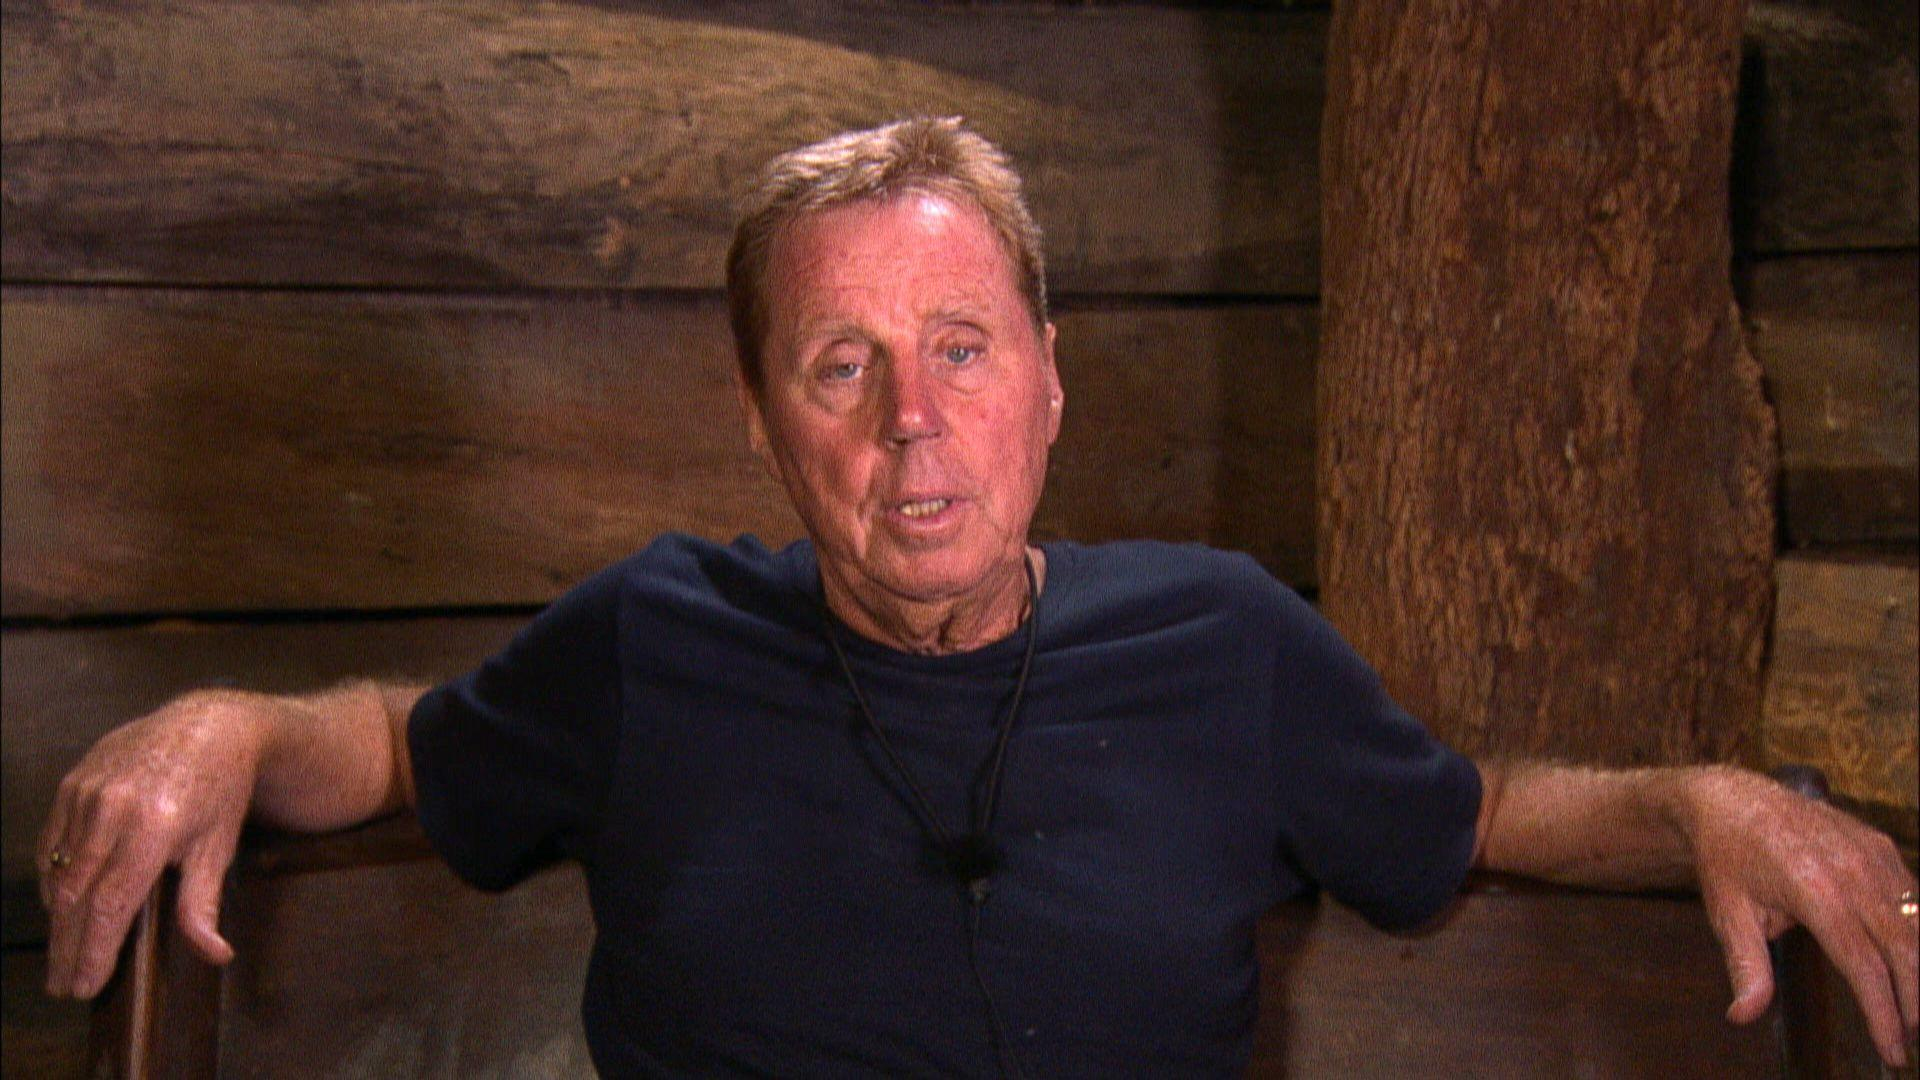 I'm A Celebrity's Harry Redknapp 'forced to eat by campmates' after refusing jungle grub